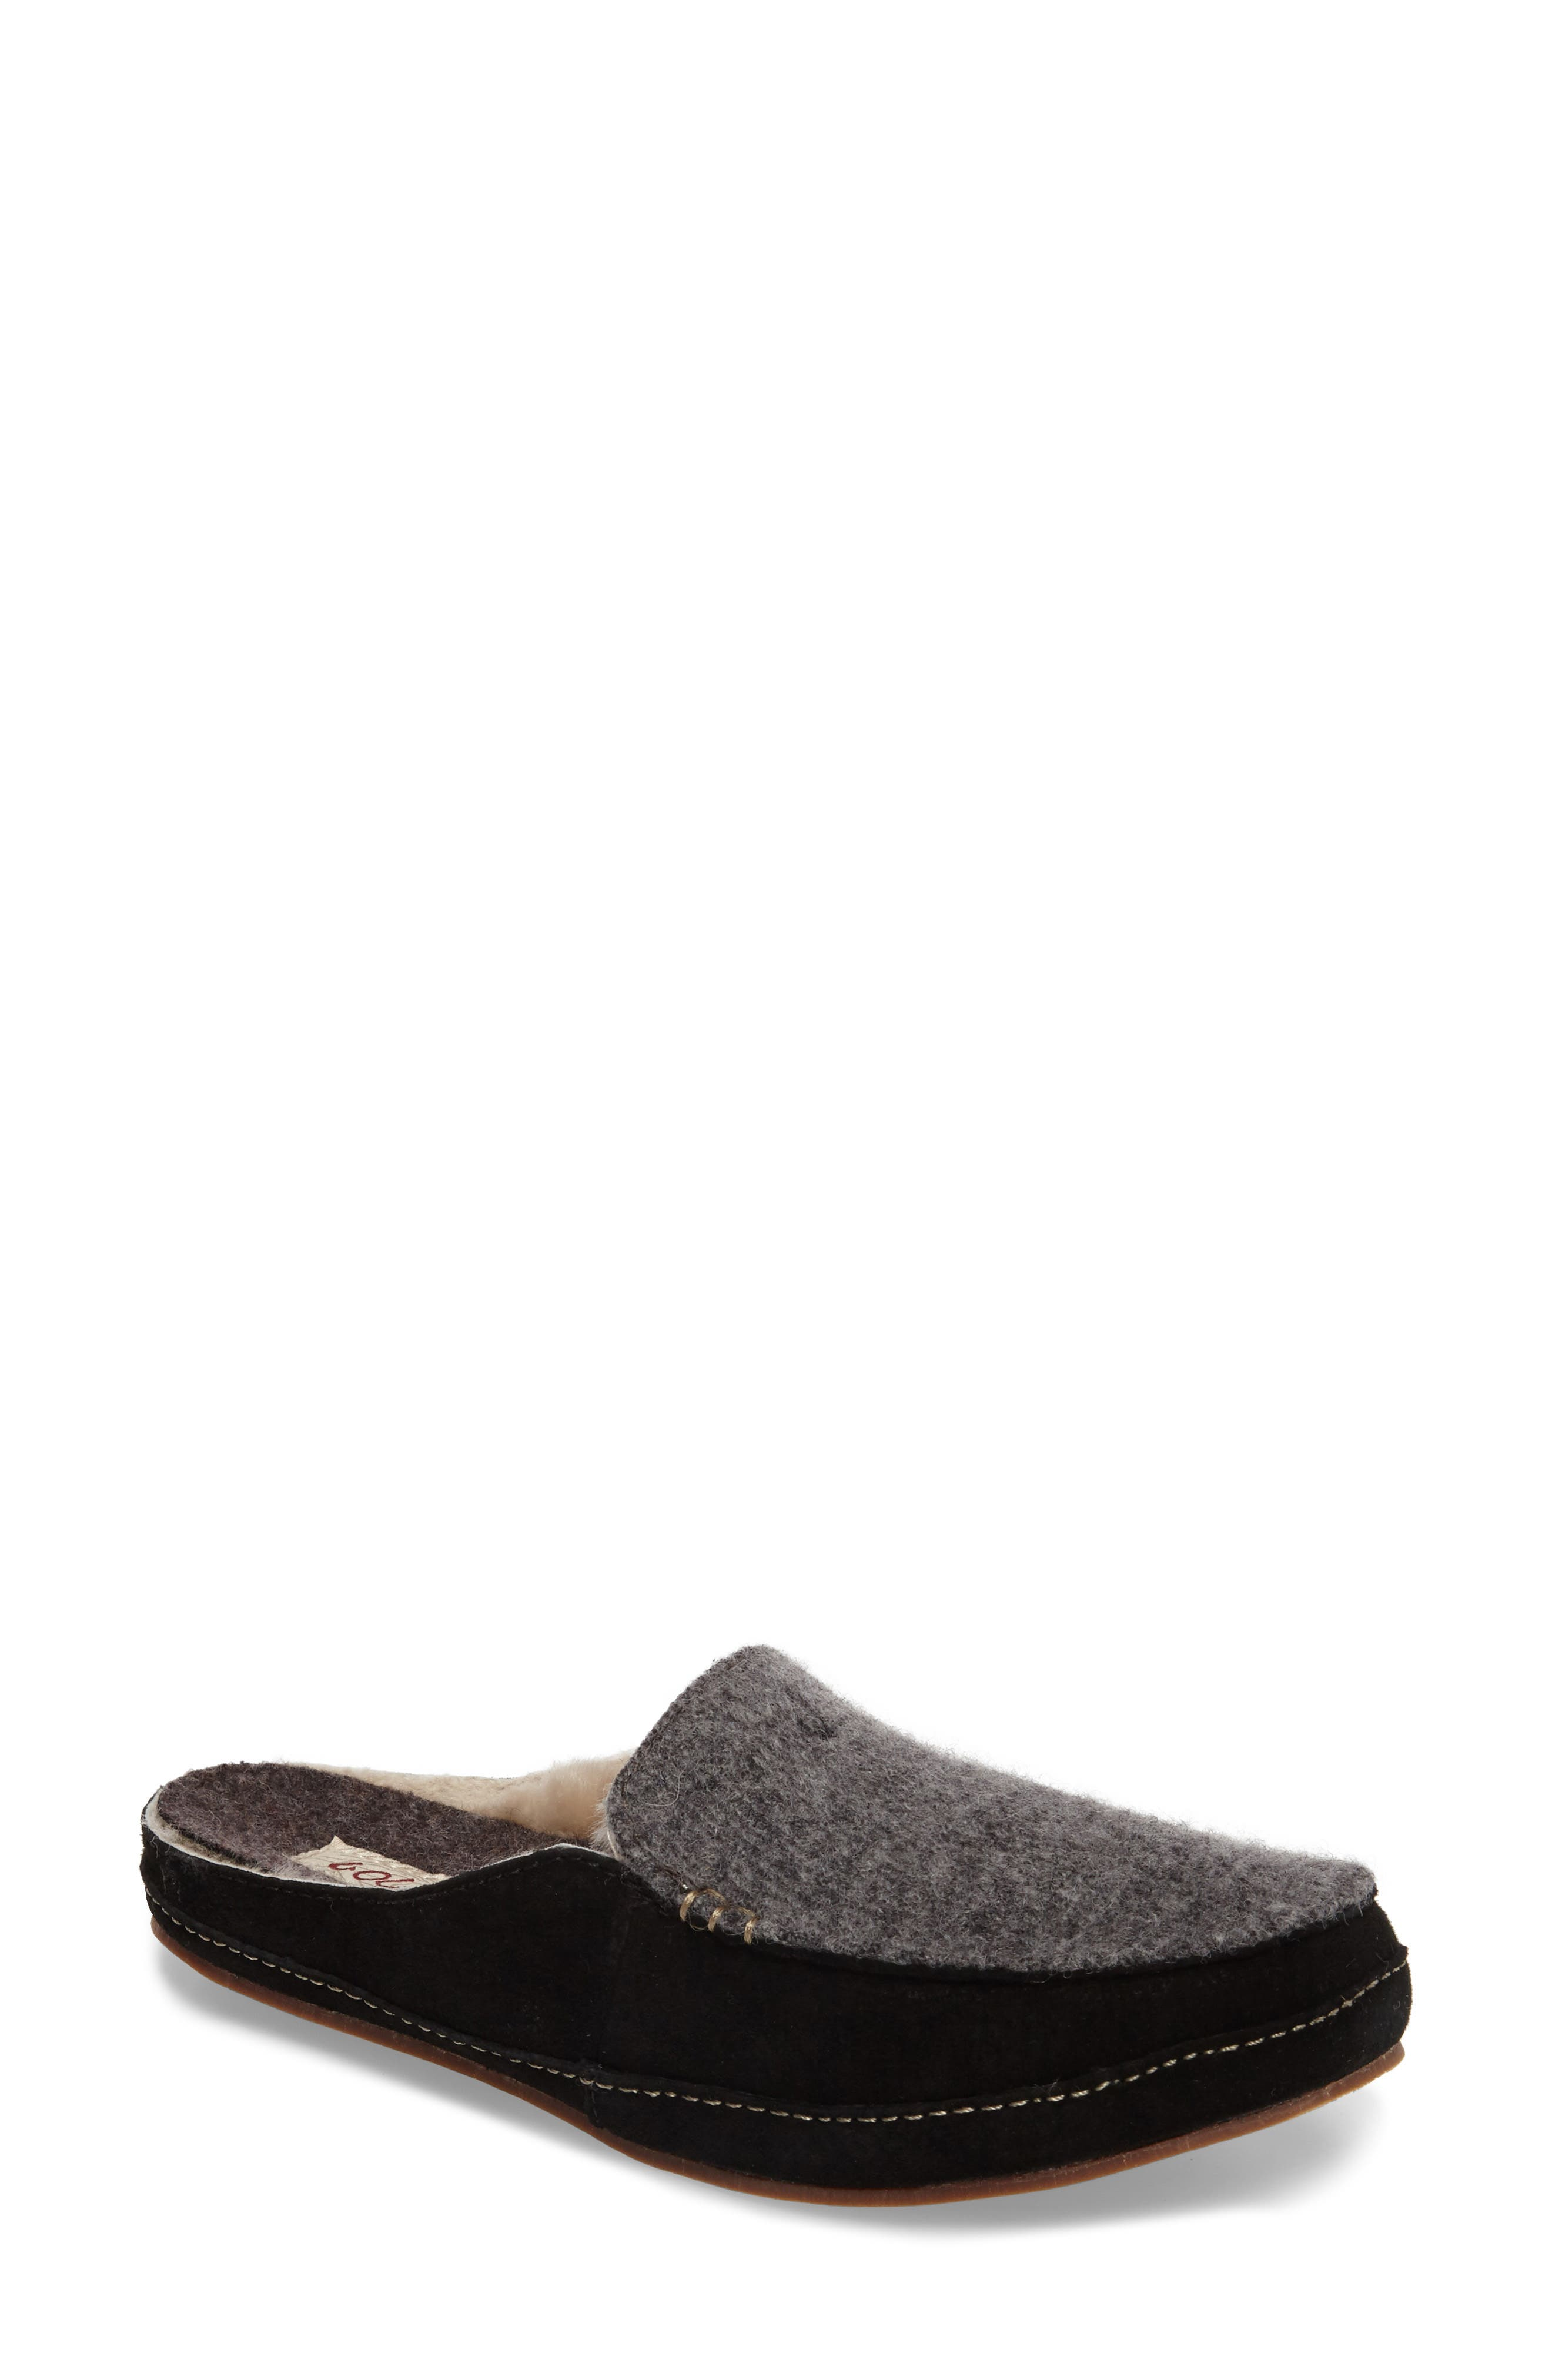 Olukai Women's Alaula Genuine Shearling Lined Slipper fU66MGIwSX